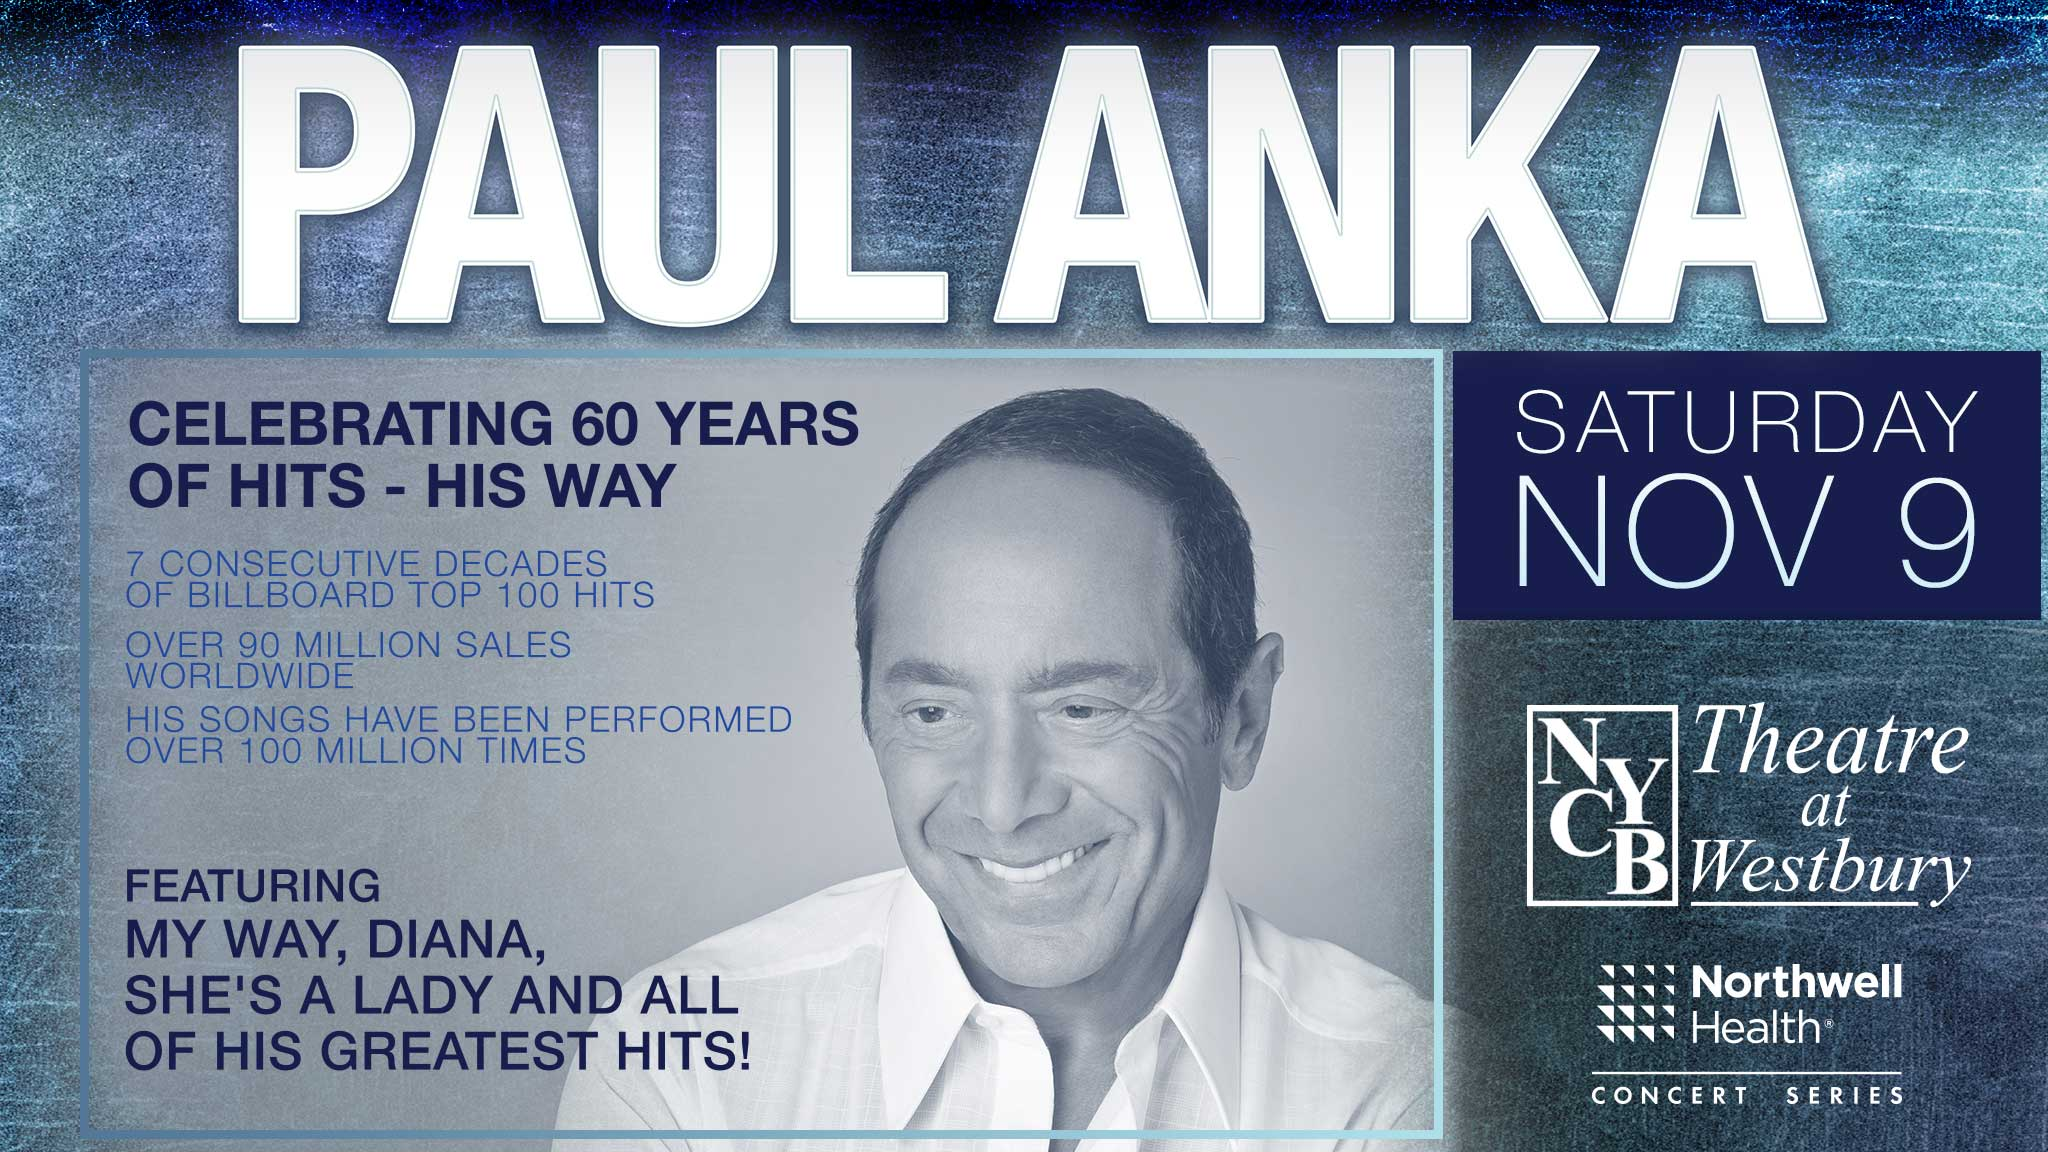 PAULANKA-Celebrating60YearsofHits-HisWay